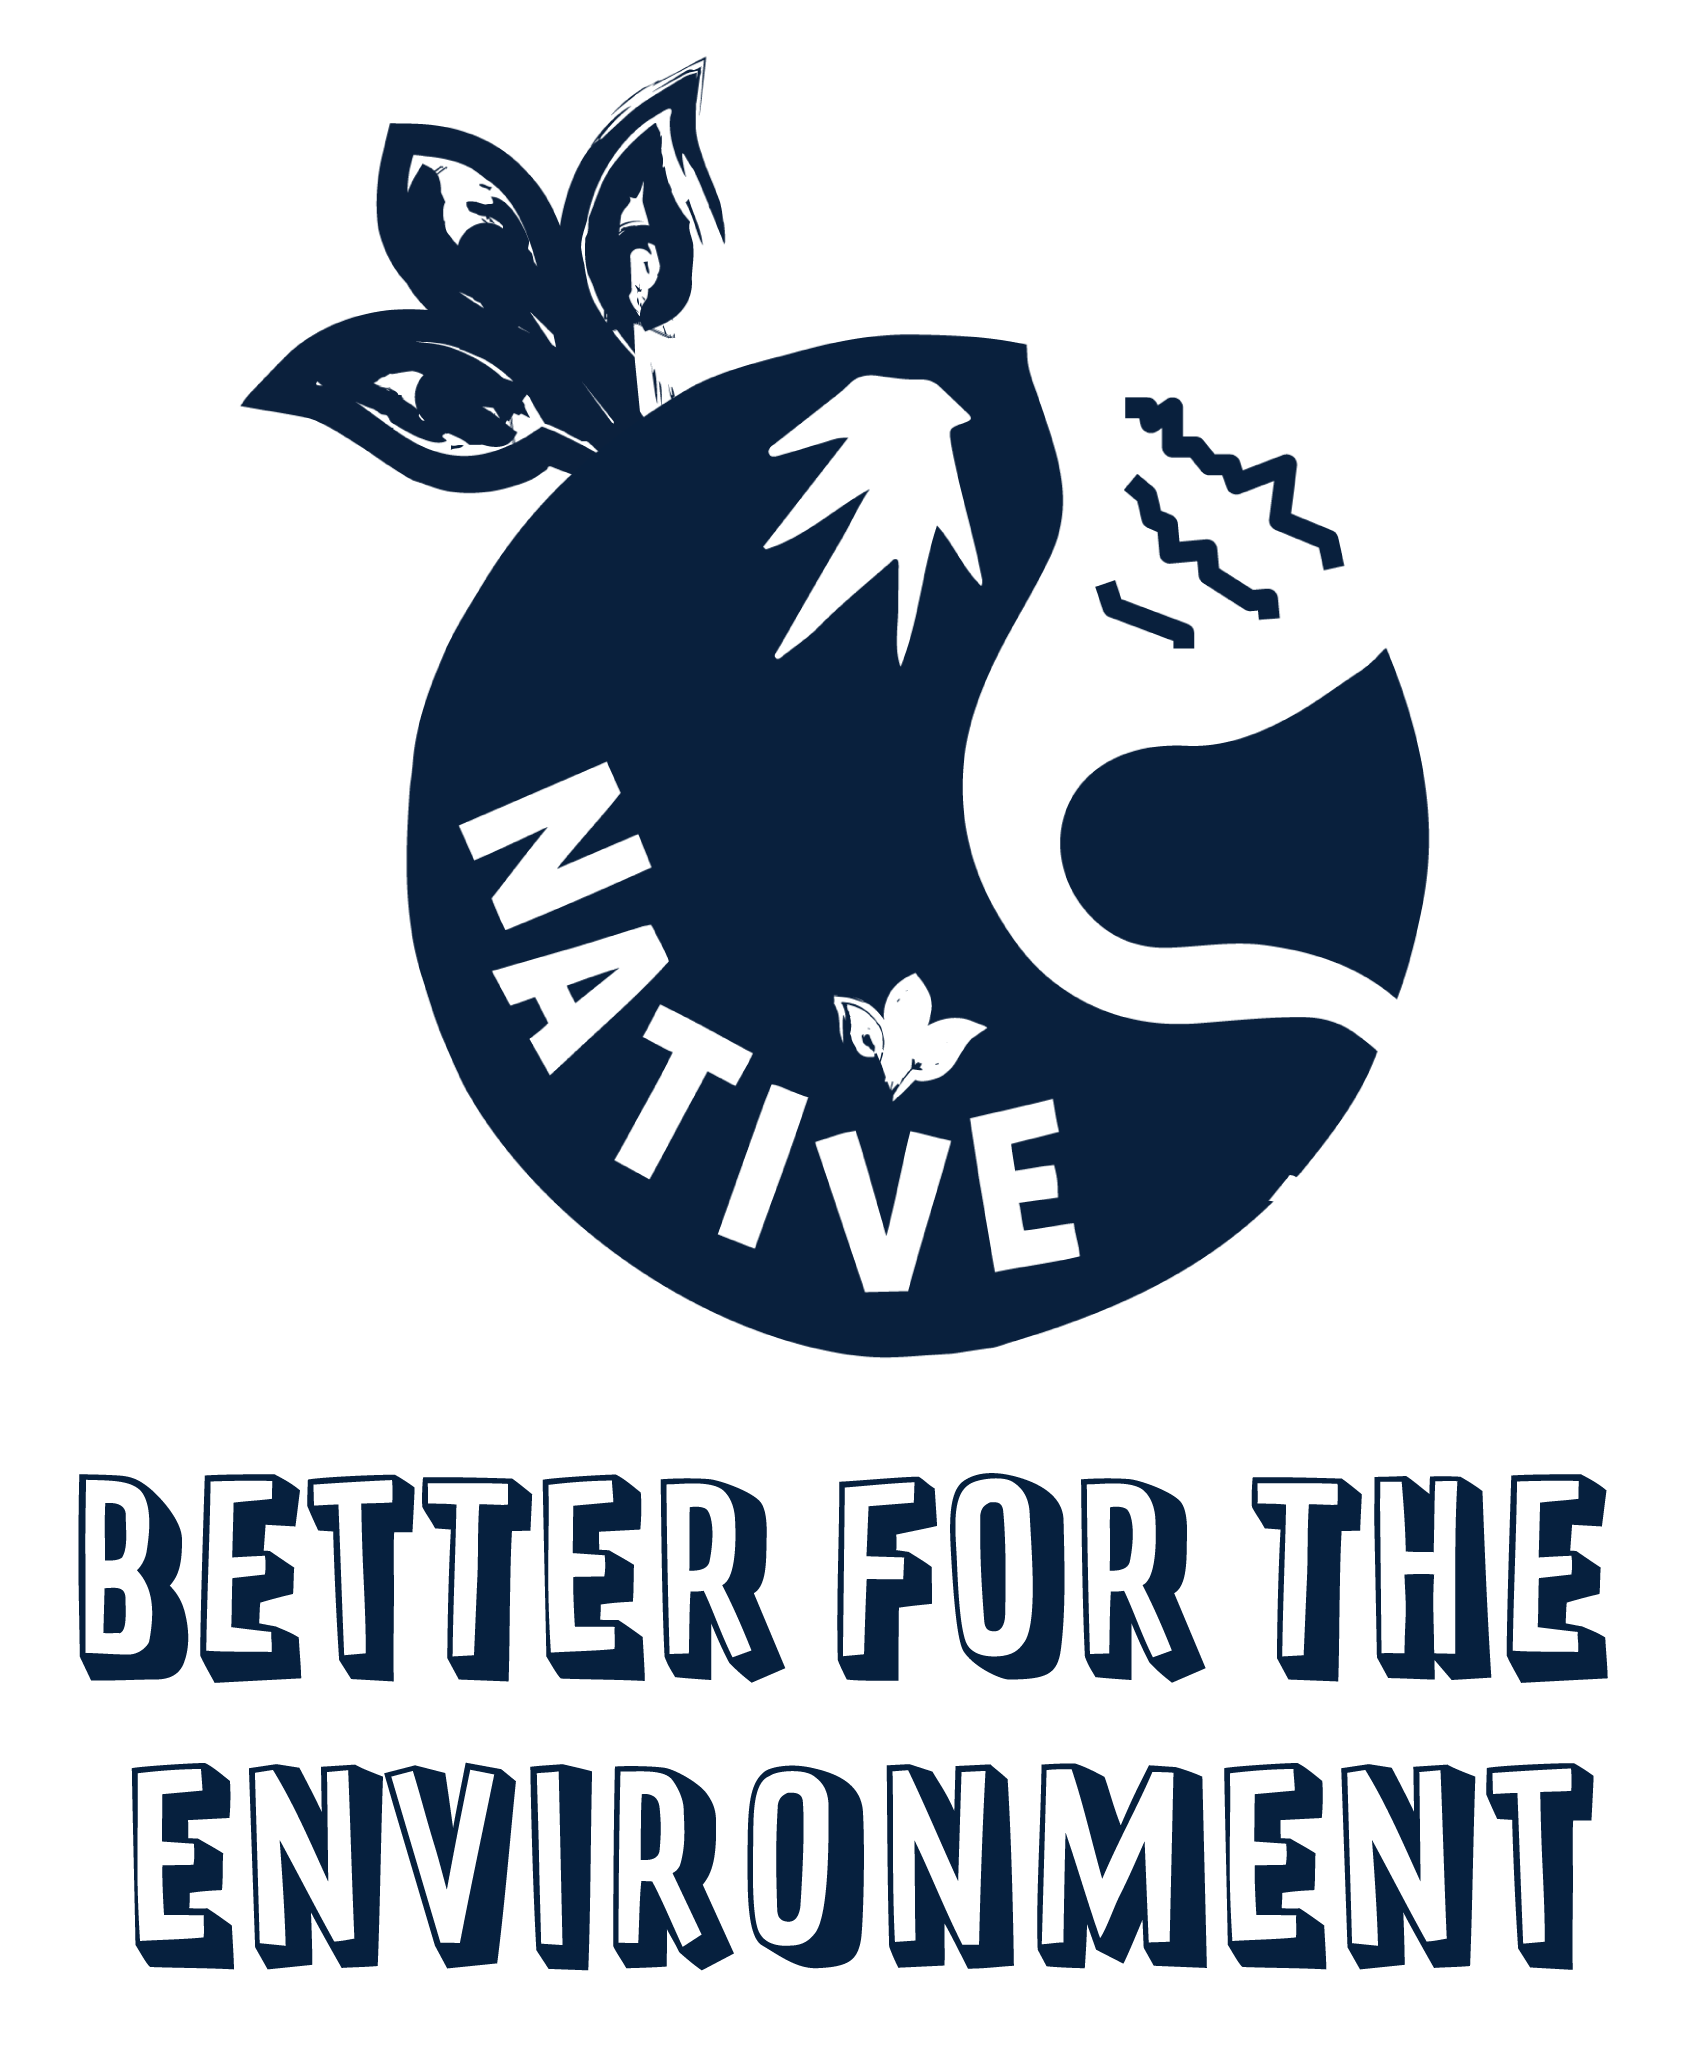 better for the environment-01-01.png